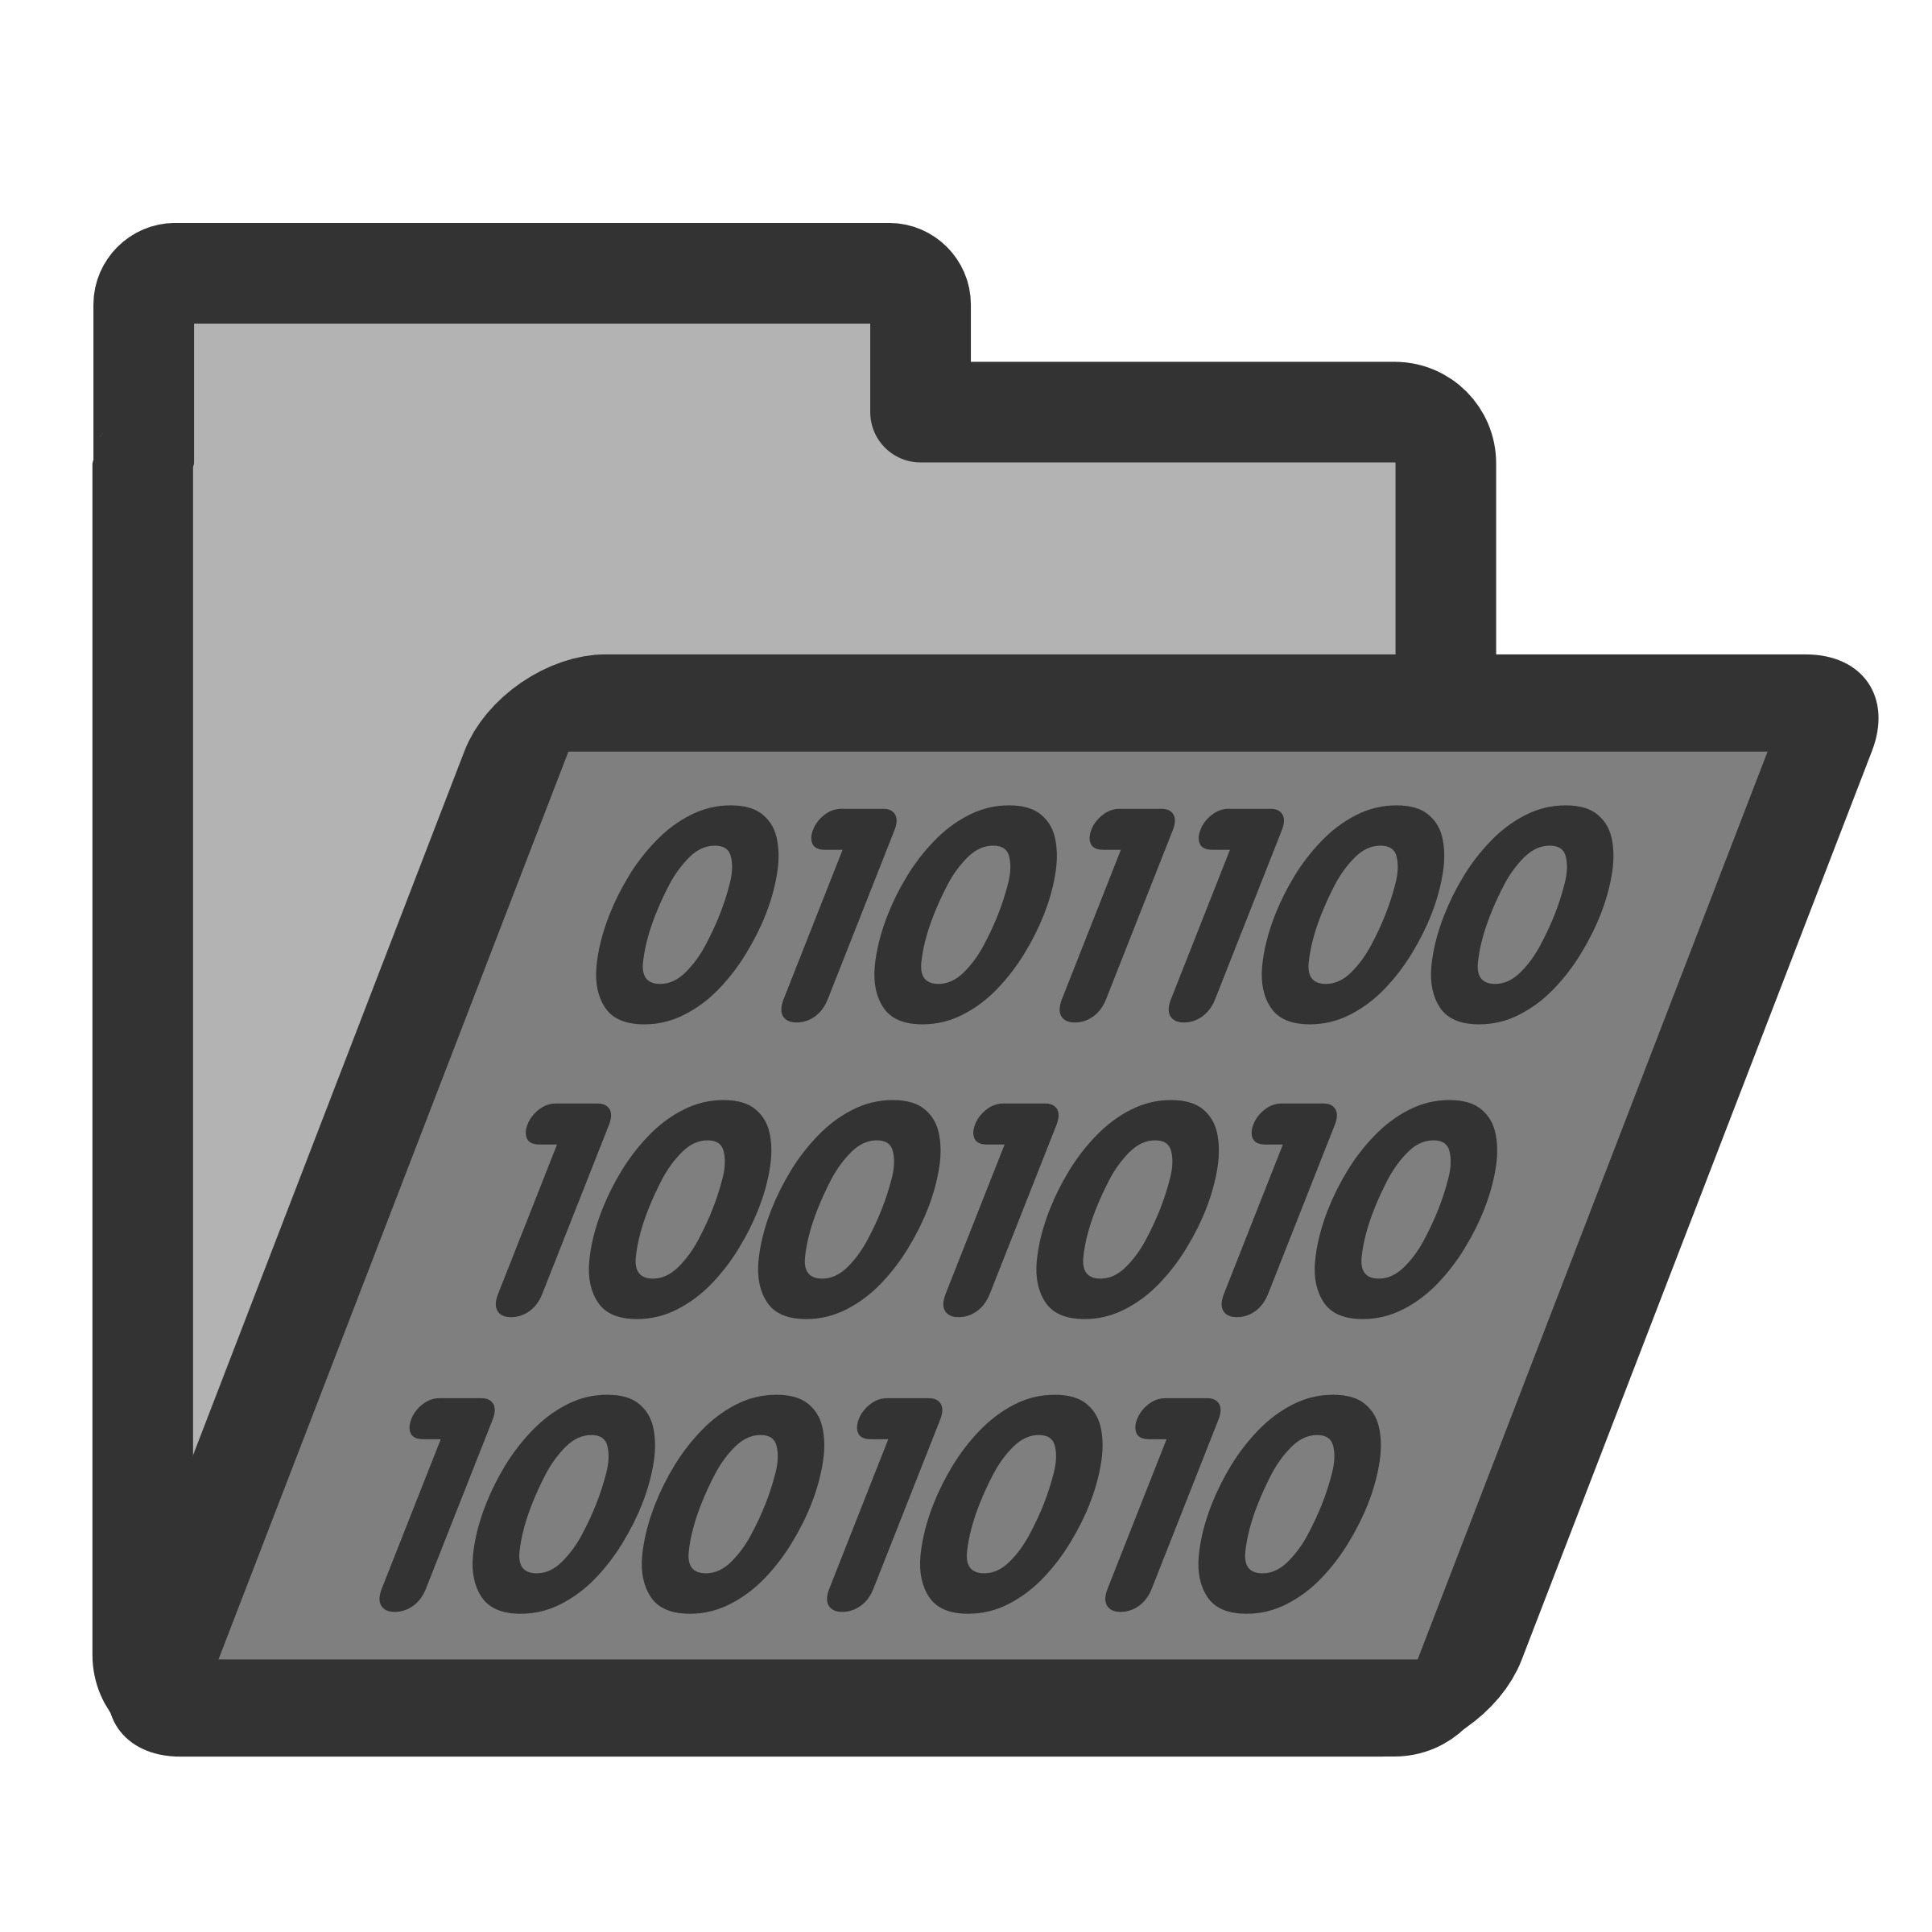 folder binary by dannya